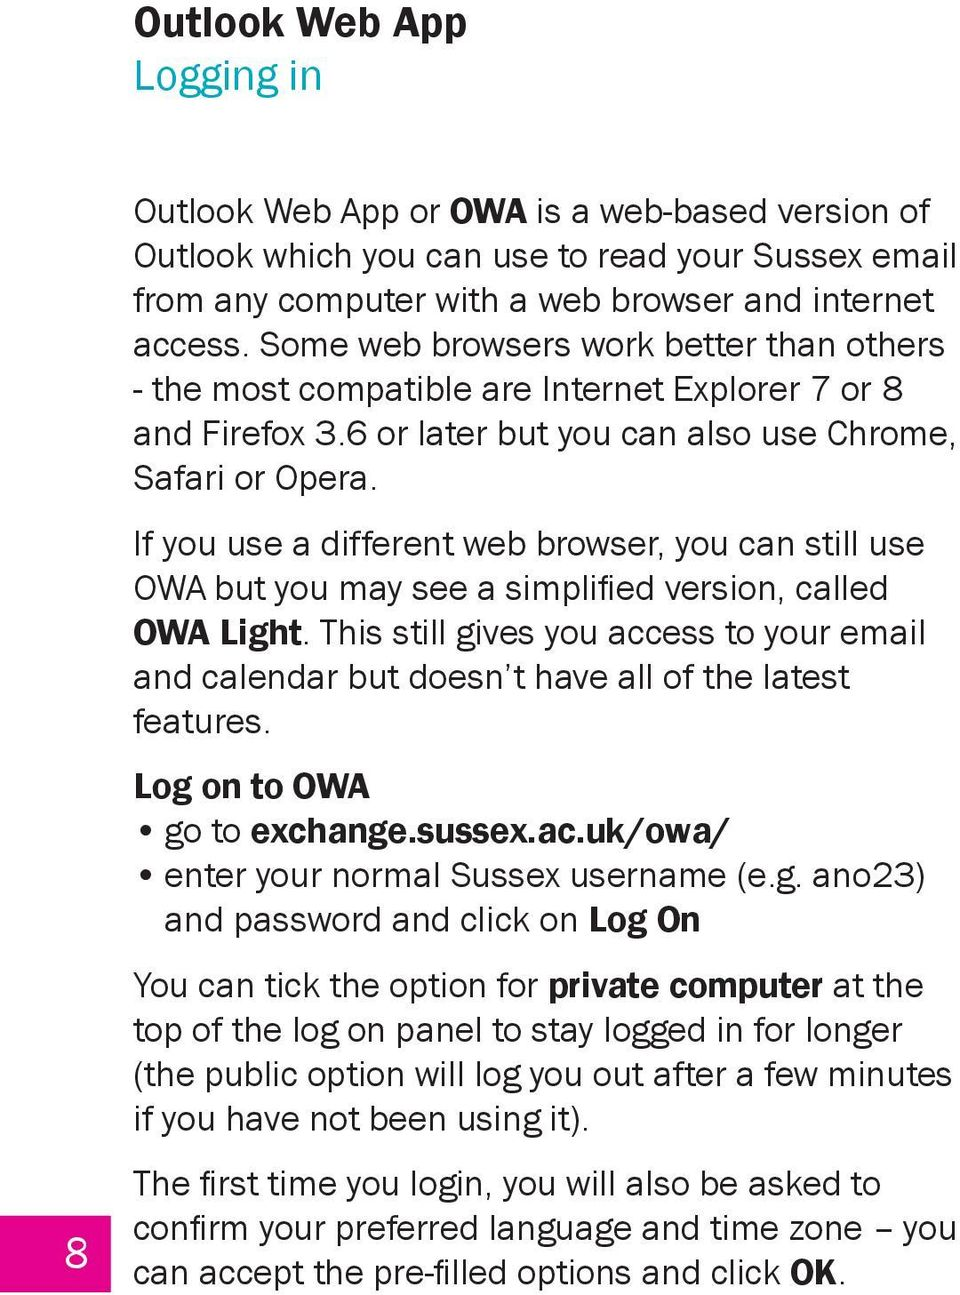 If you use a different web browser, you can still use OWA but you may see a simplified version, called OWA Light.